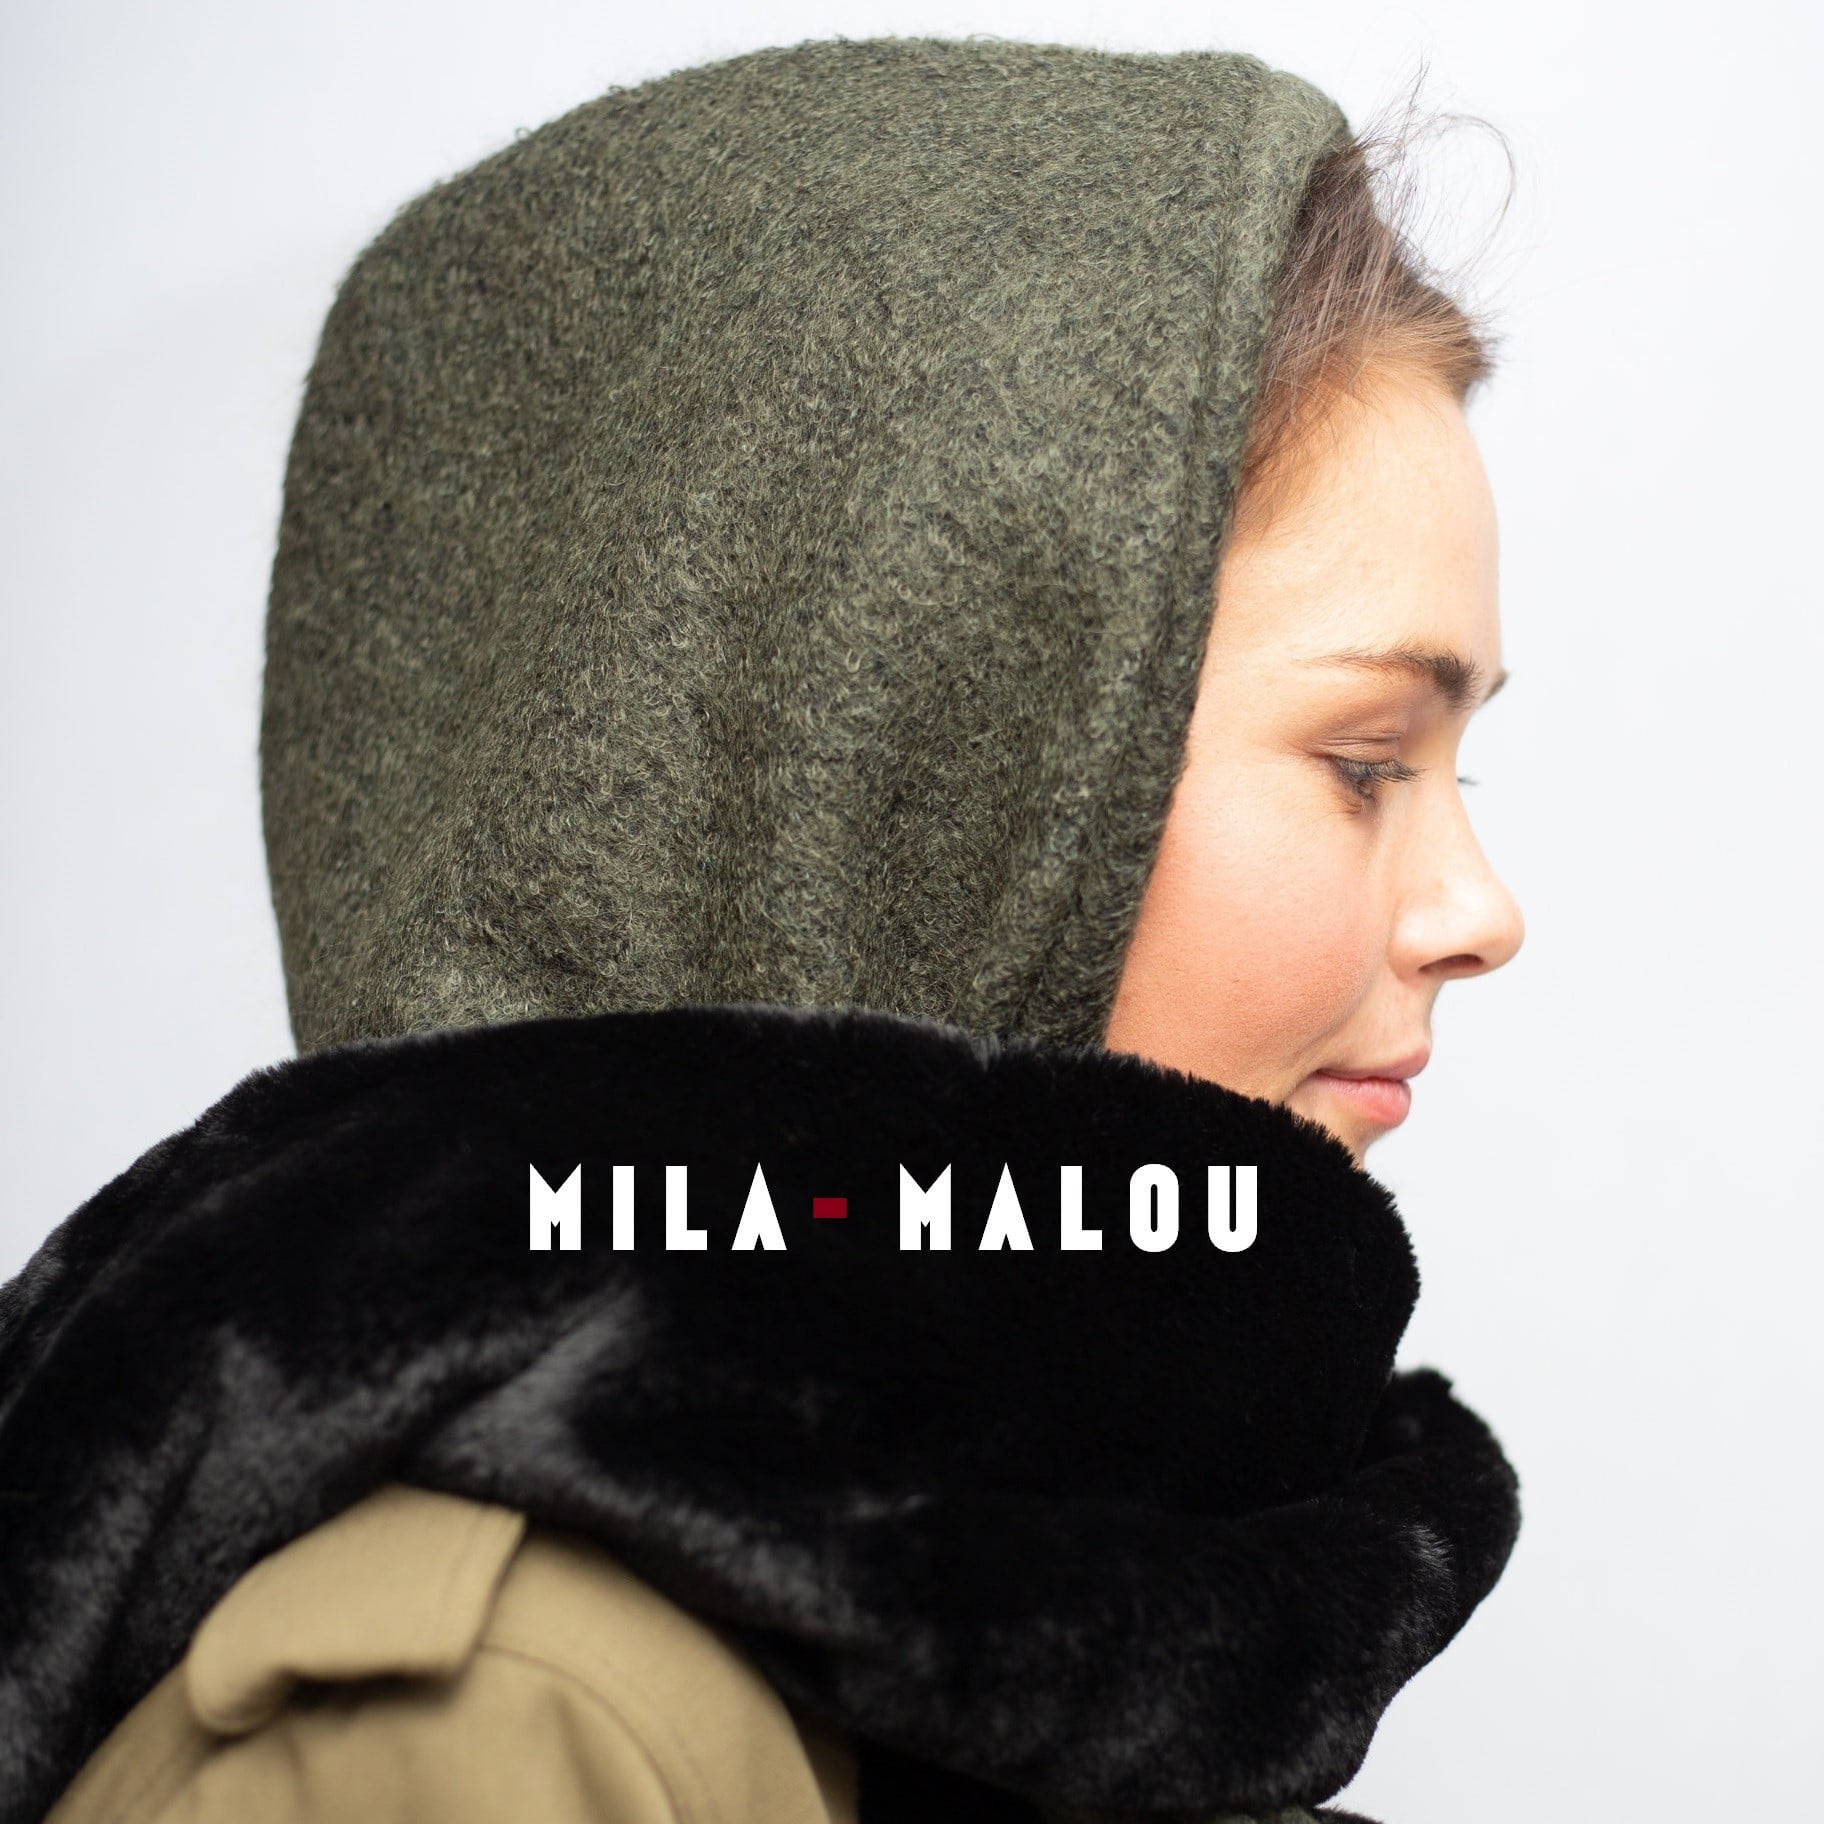 Mila Malou (Made in France) sur Prends en Soin